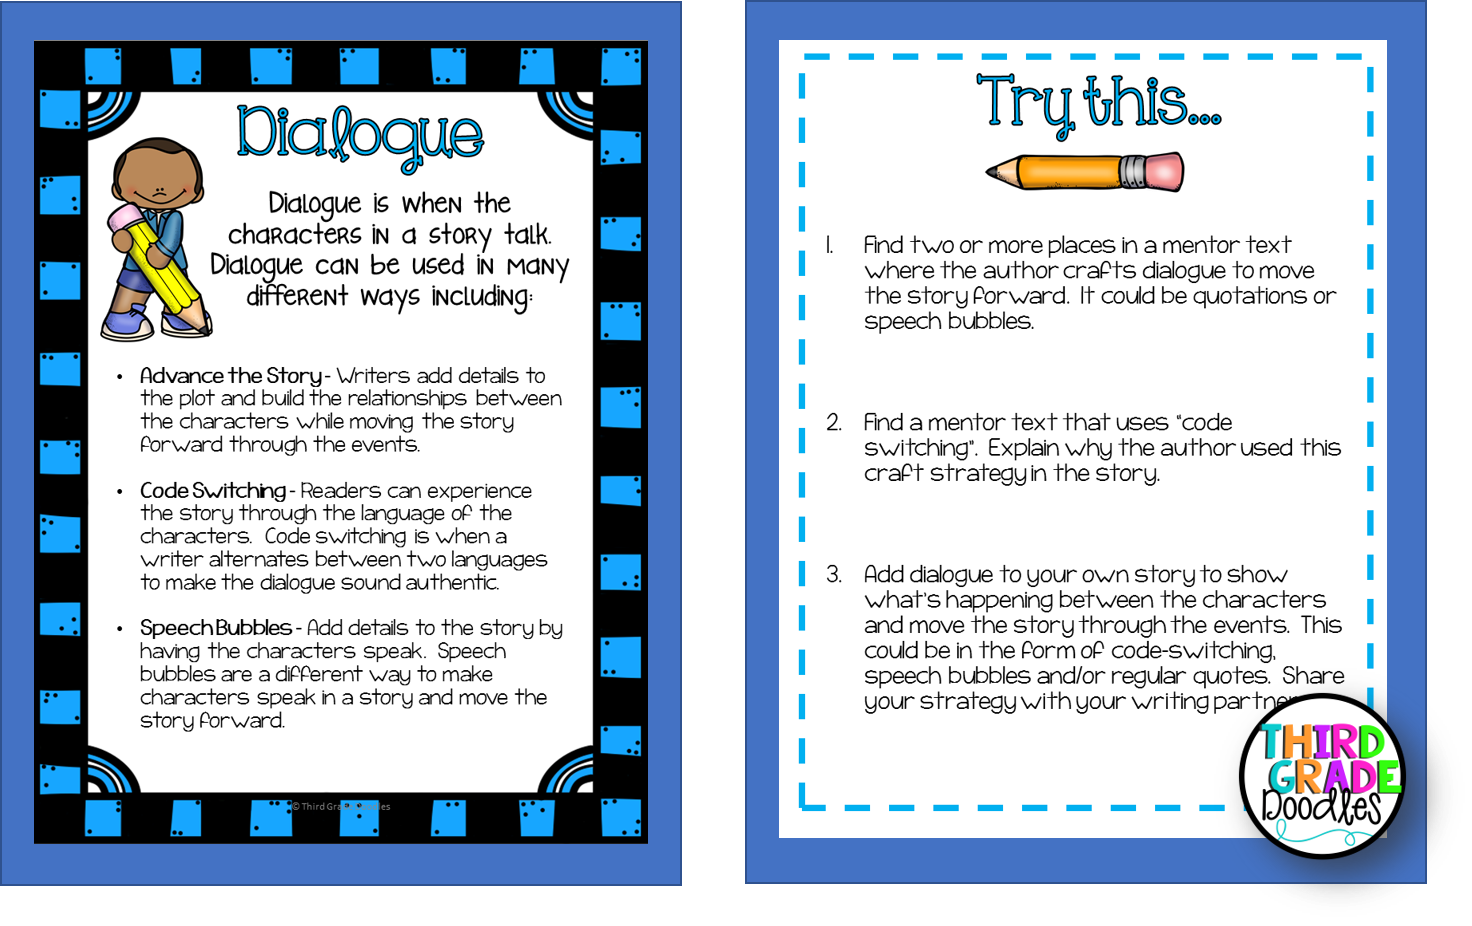 Teaching Personal Narrative Writing - Step By Step! - Third Grade